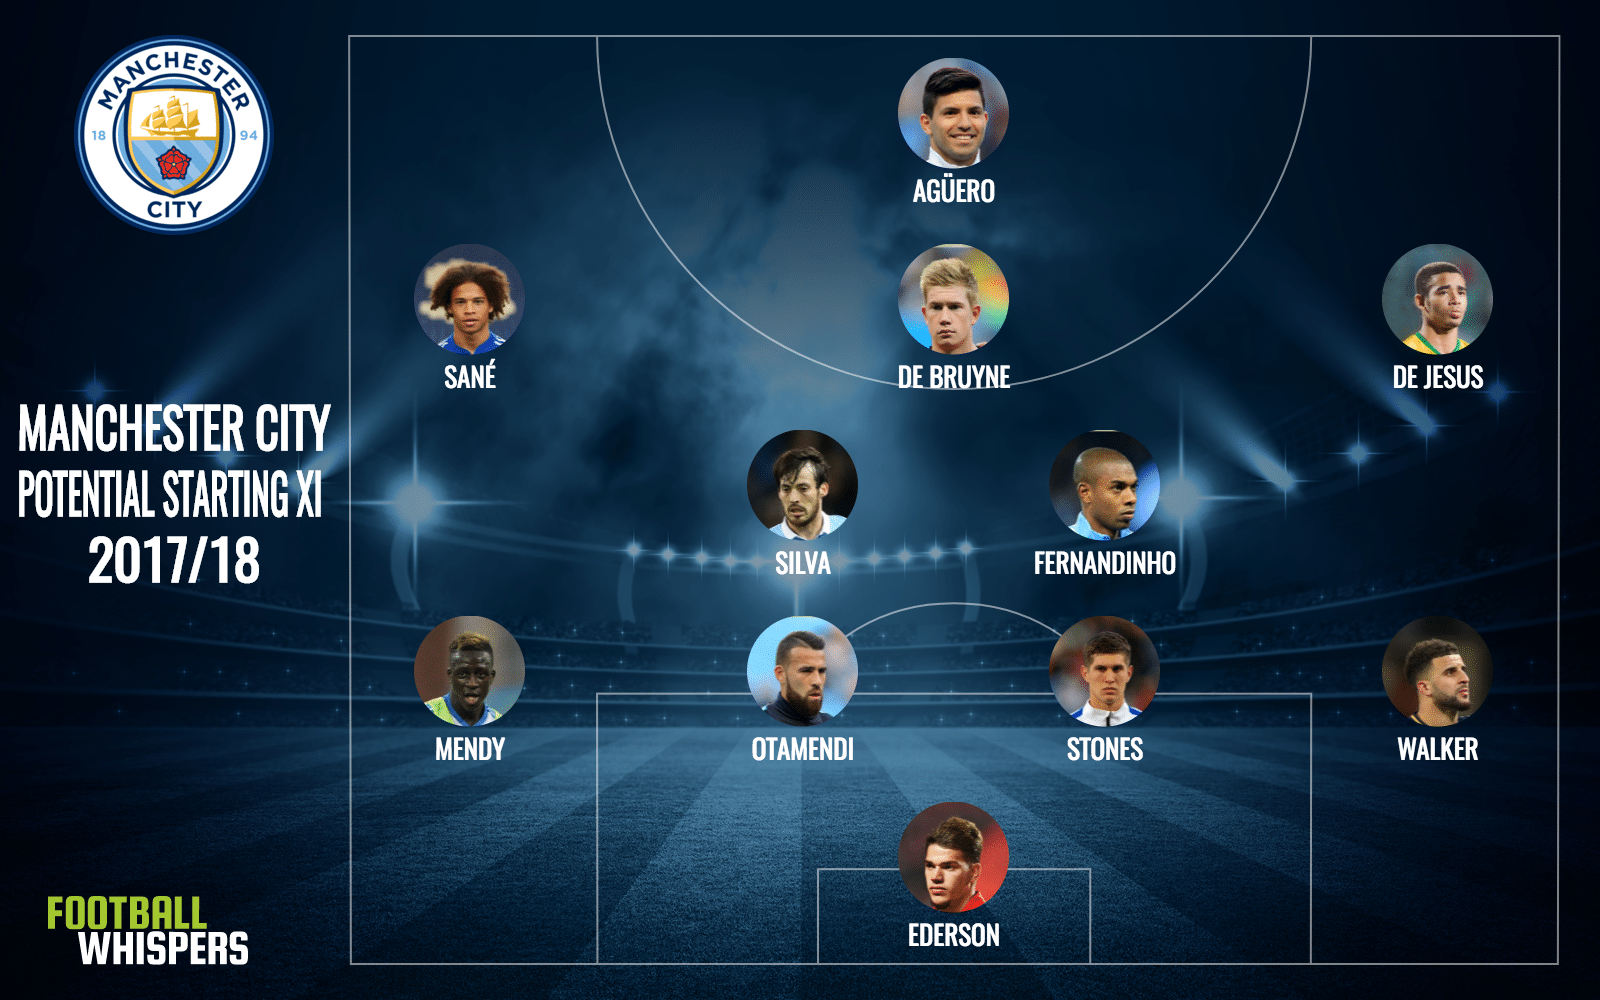 Manchester City potential starting XI 2017/18